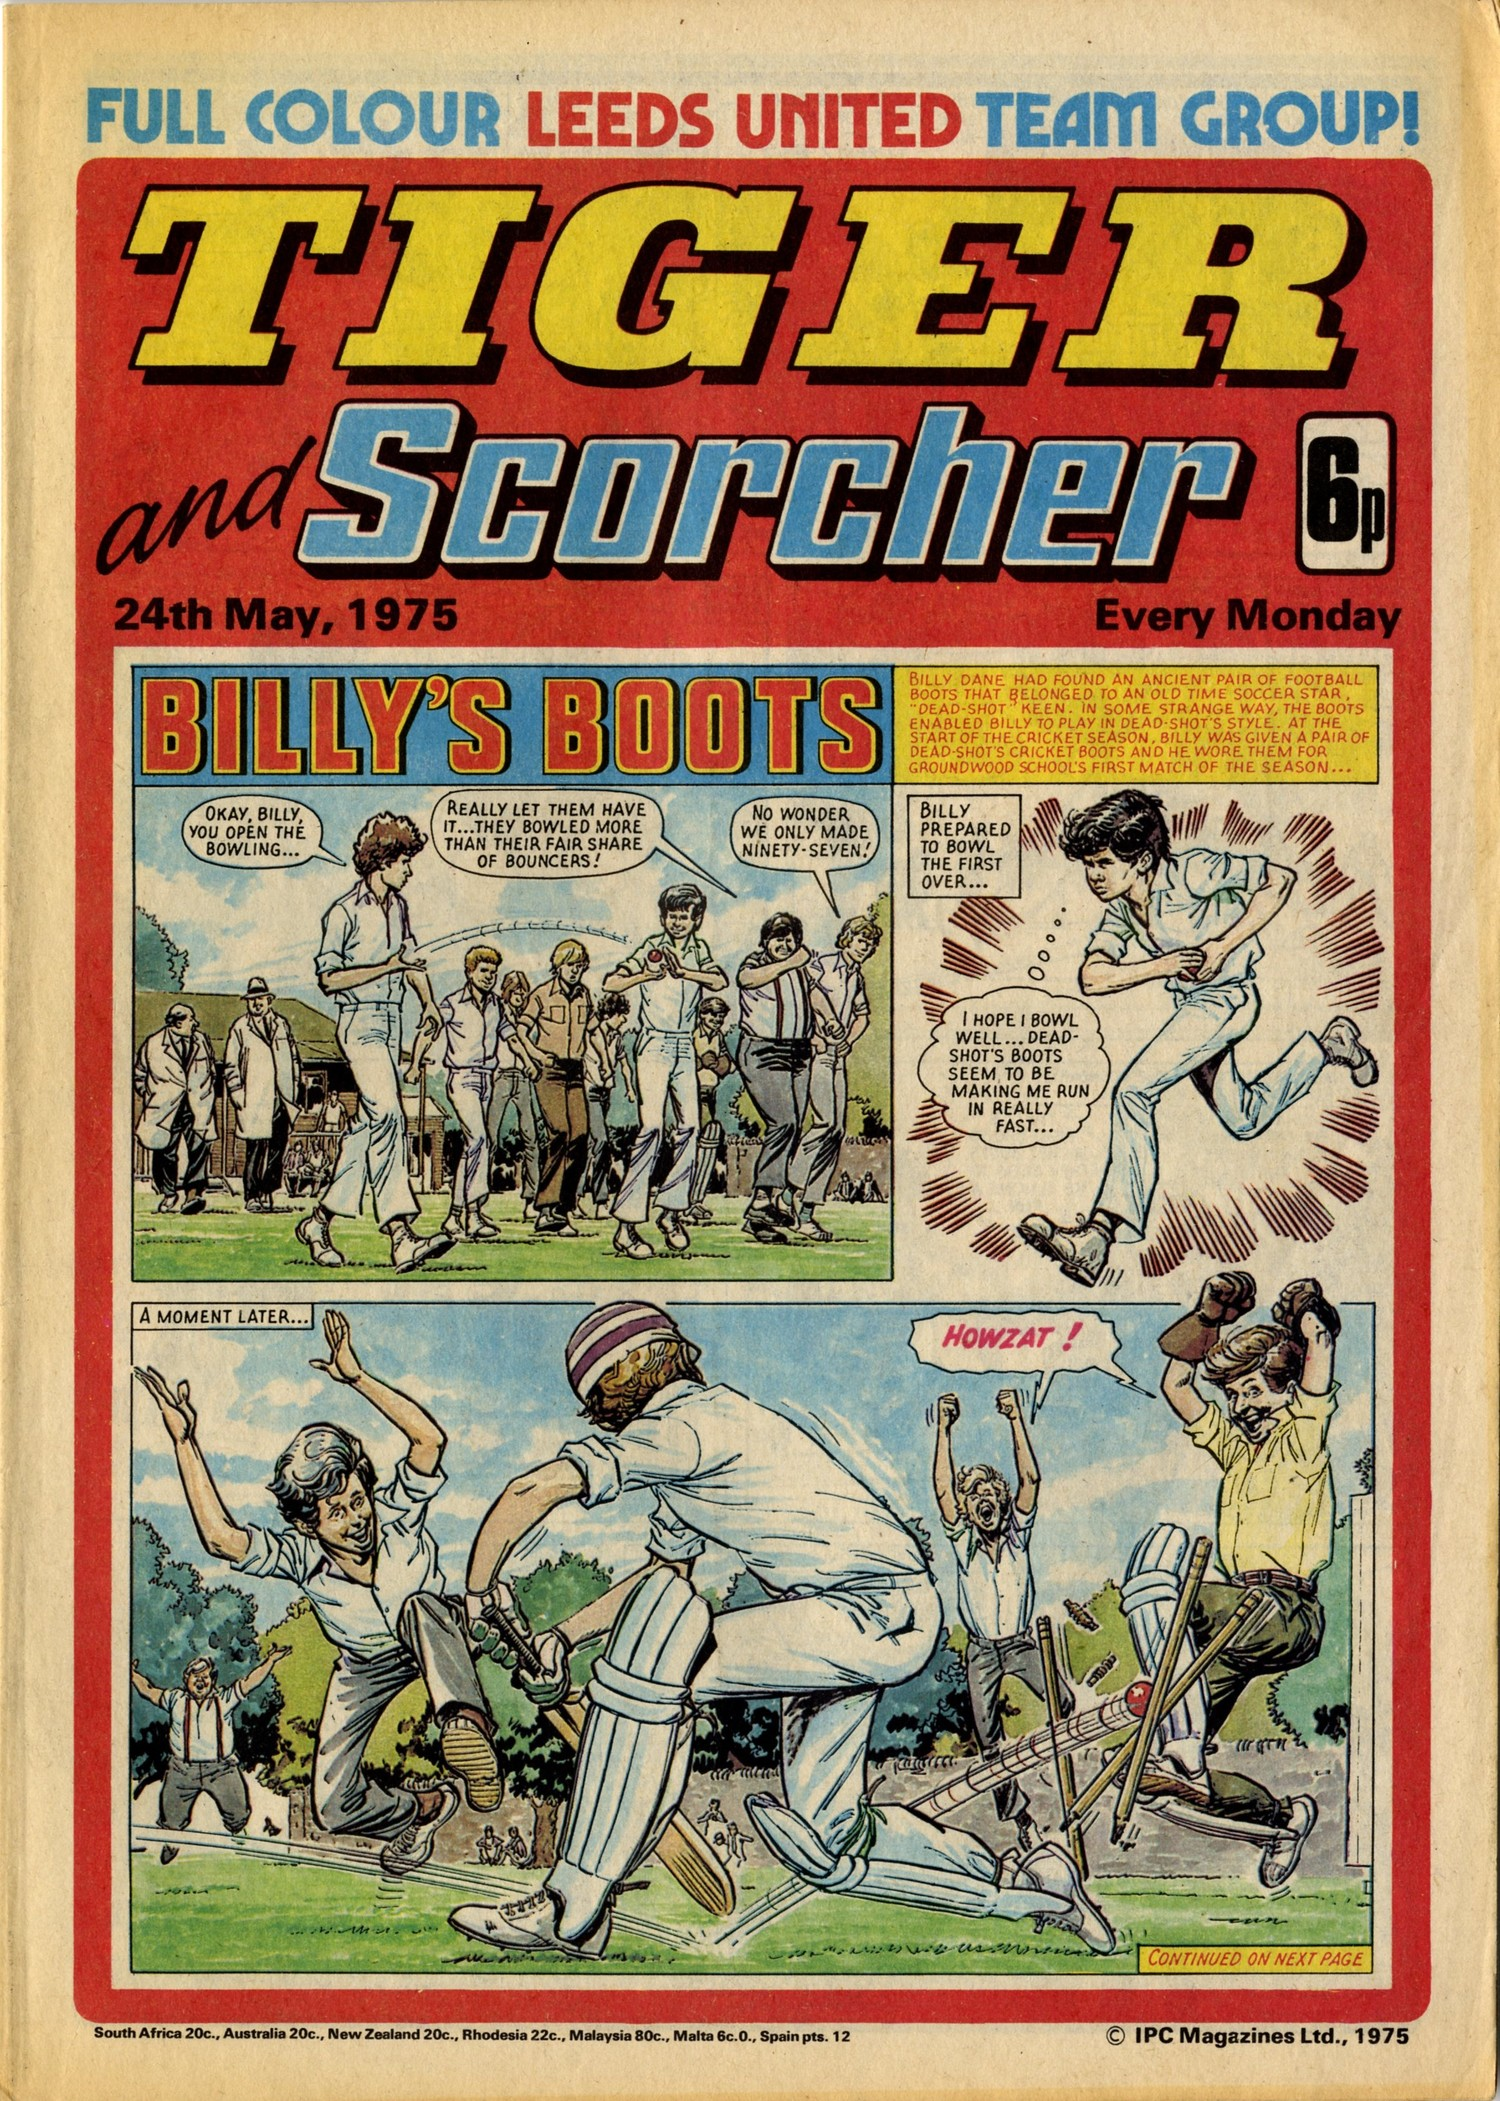 On this day, 24 May 1975: Tiger and Scorcher — GREAT NEWS